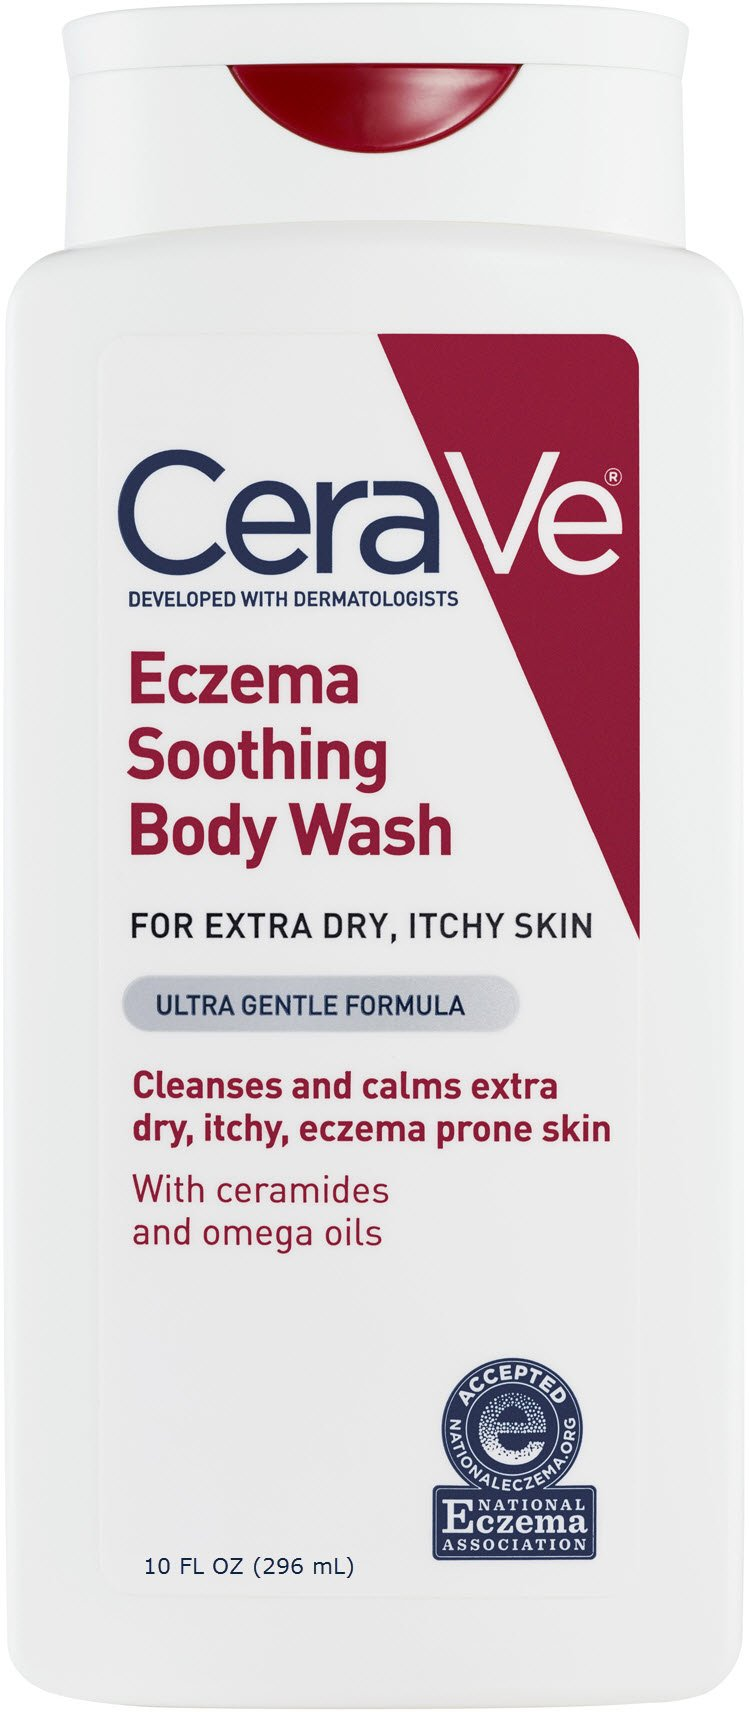 CeraVe Eczema Soothing Body Wash 10 oz with Omega Oils and Ceramides for Cleansing and Calming Dry